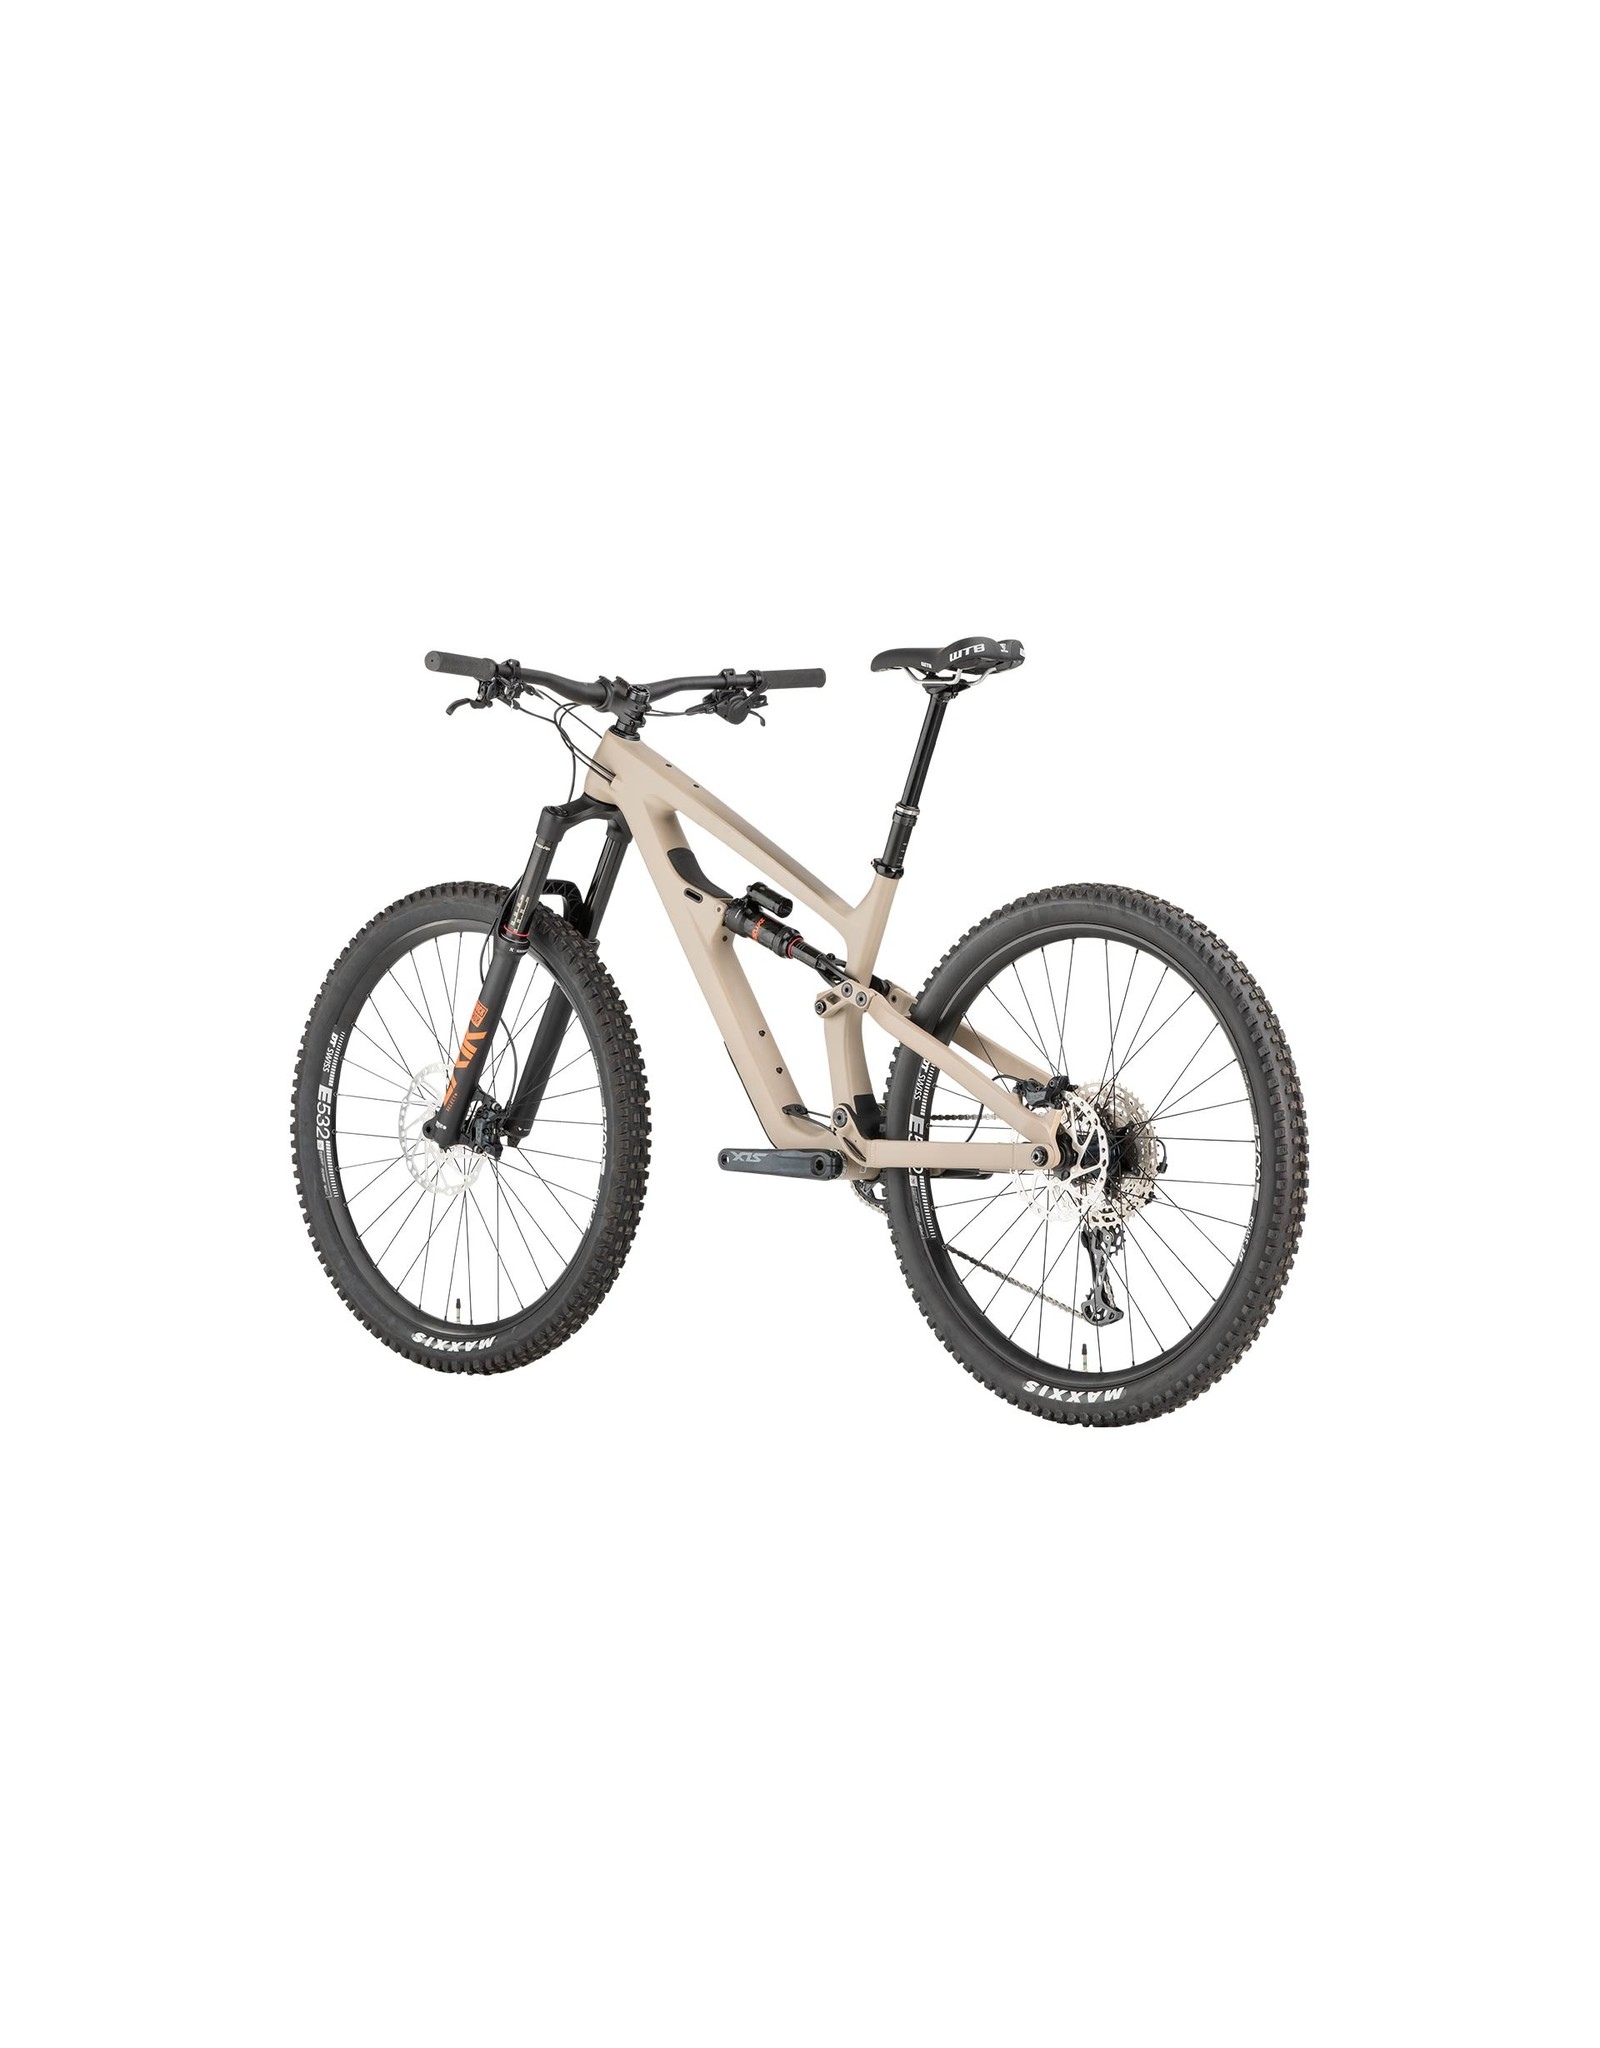 "Salsa Salsa Blackthorn Carbon SLX Bike - 29"", Carbon, Tan, Medium"